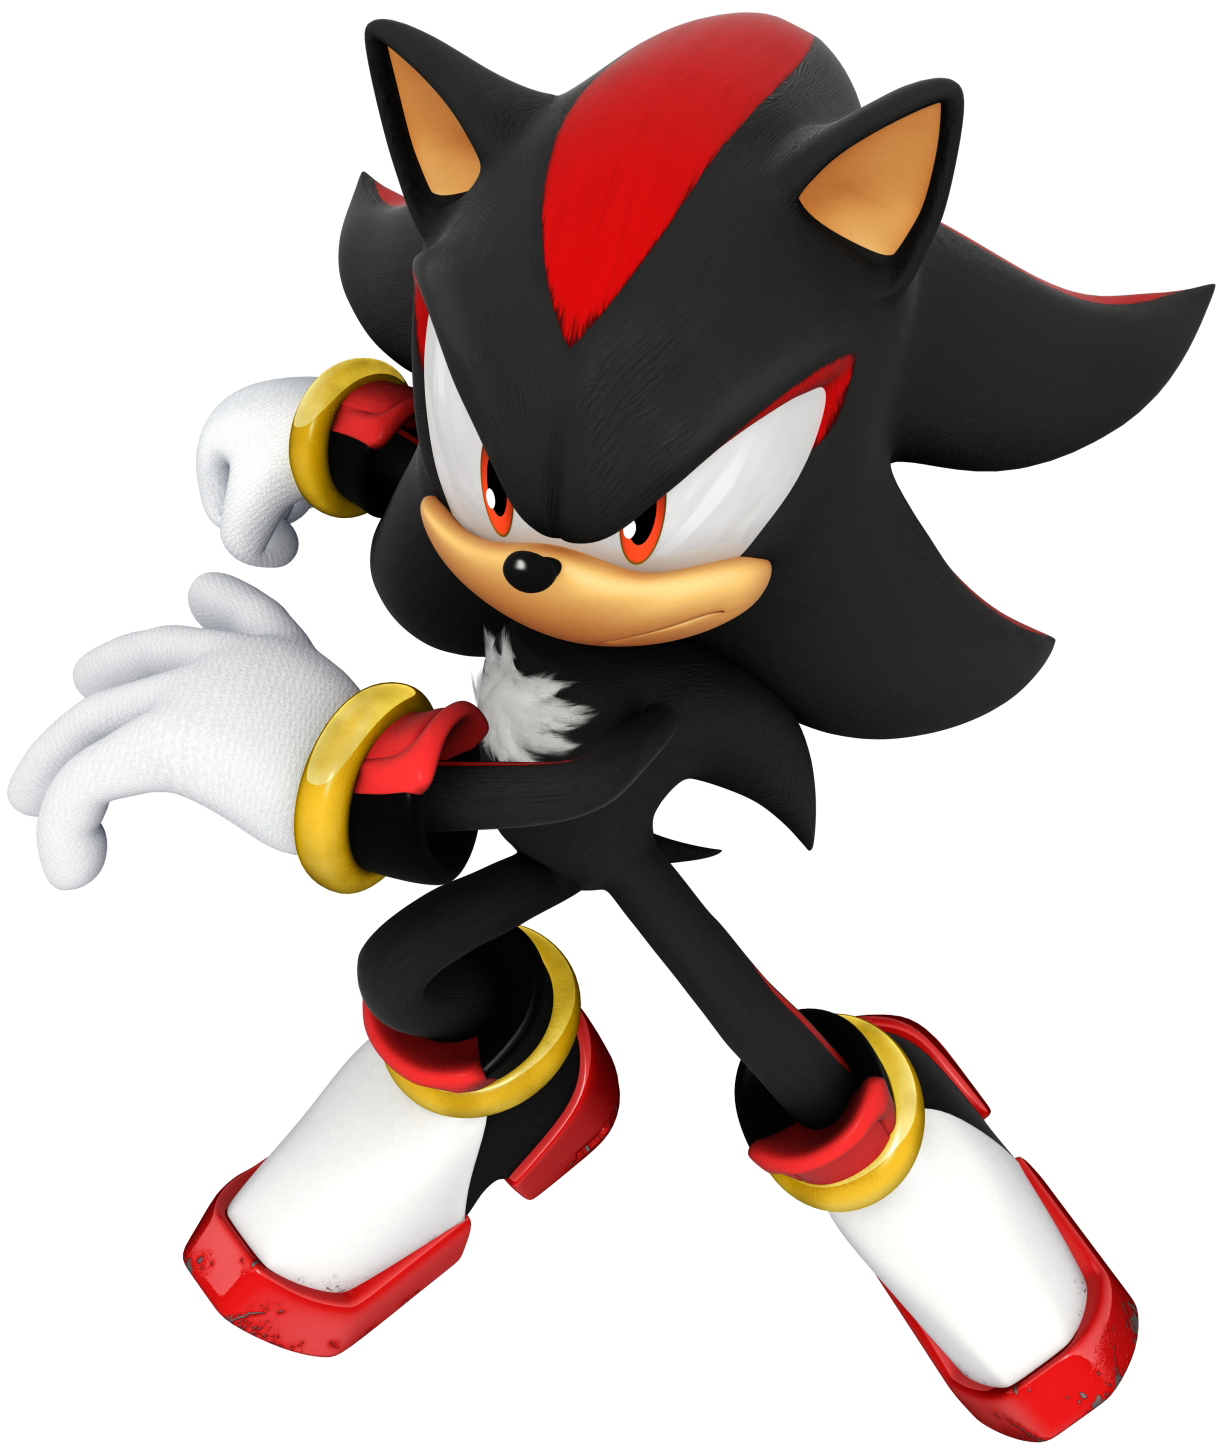 Shadow the hedgehog sonicwiki fandom powered by wikia - Jeux de sonic vs shadow ...